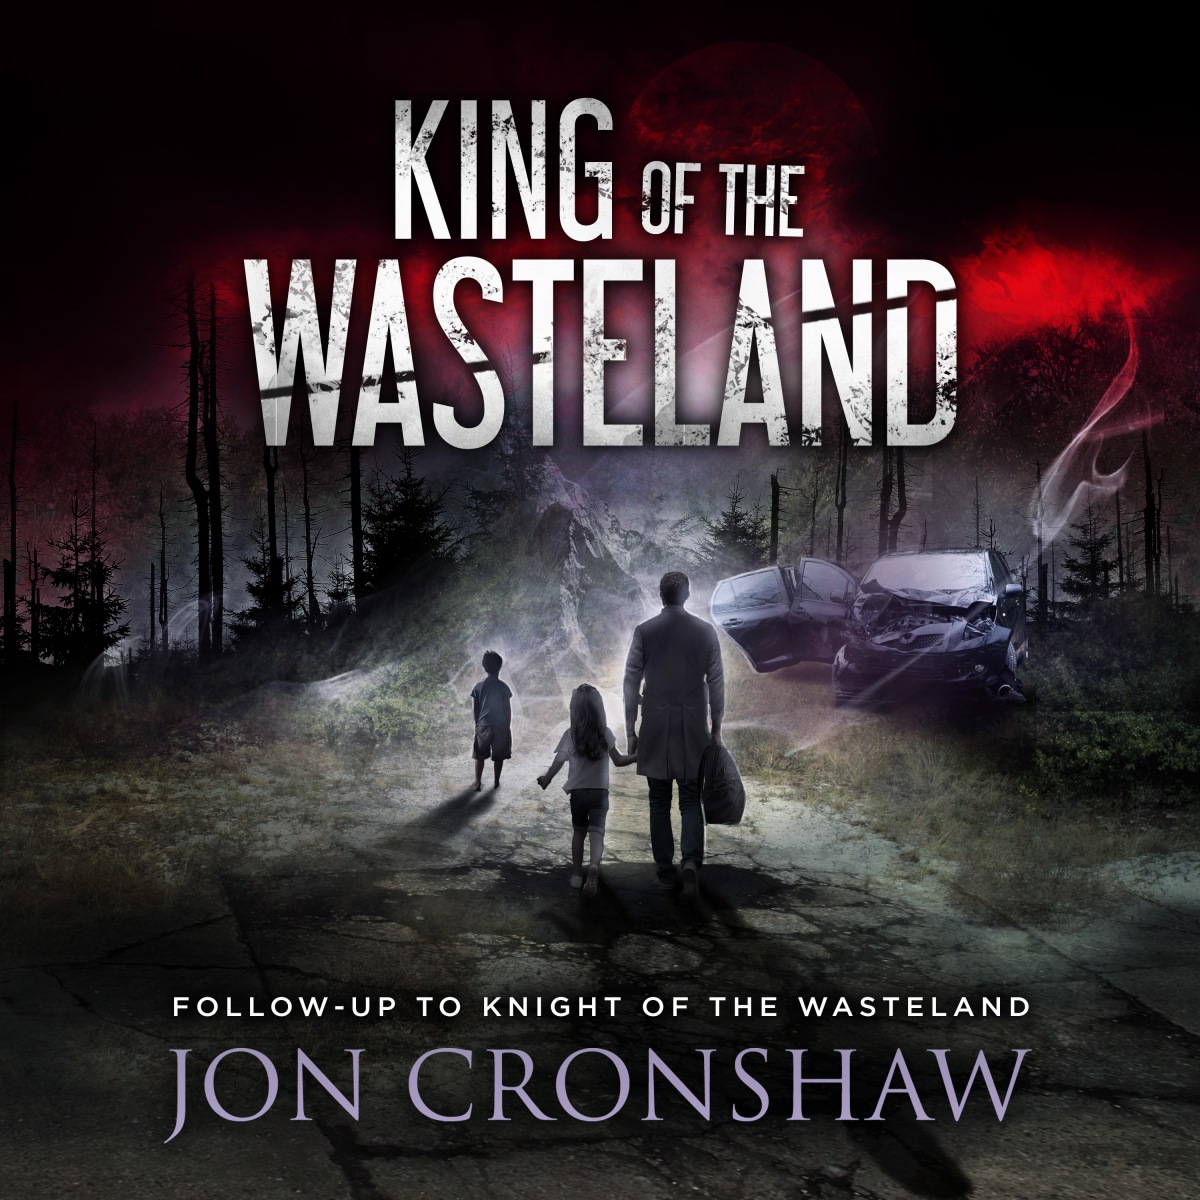 Announcing: The King of the Wasteland audio edition is now available!